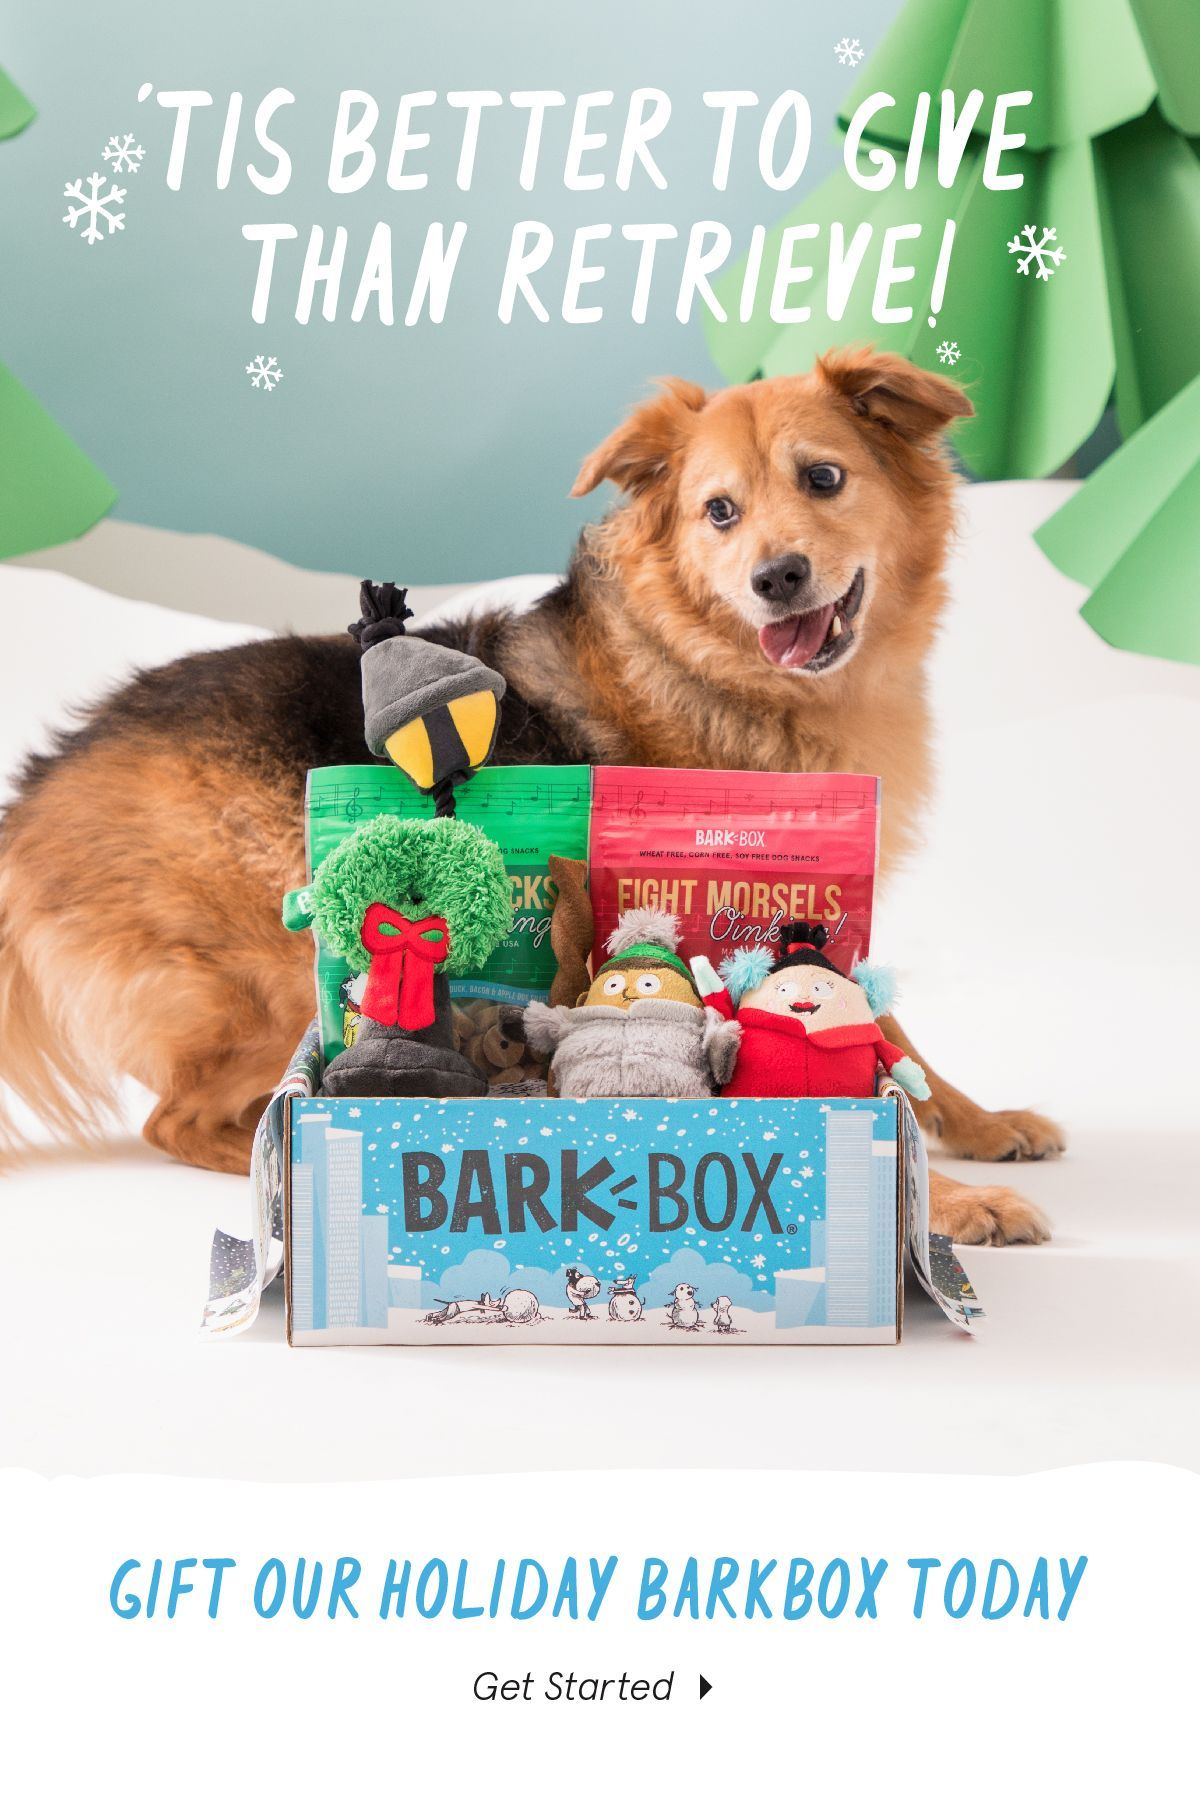 BarkBox is a monthly themed box of toys, treats, and crazy